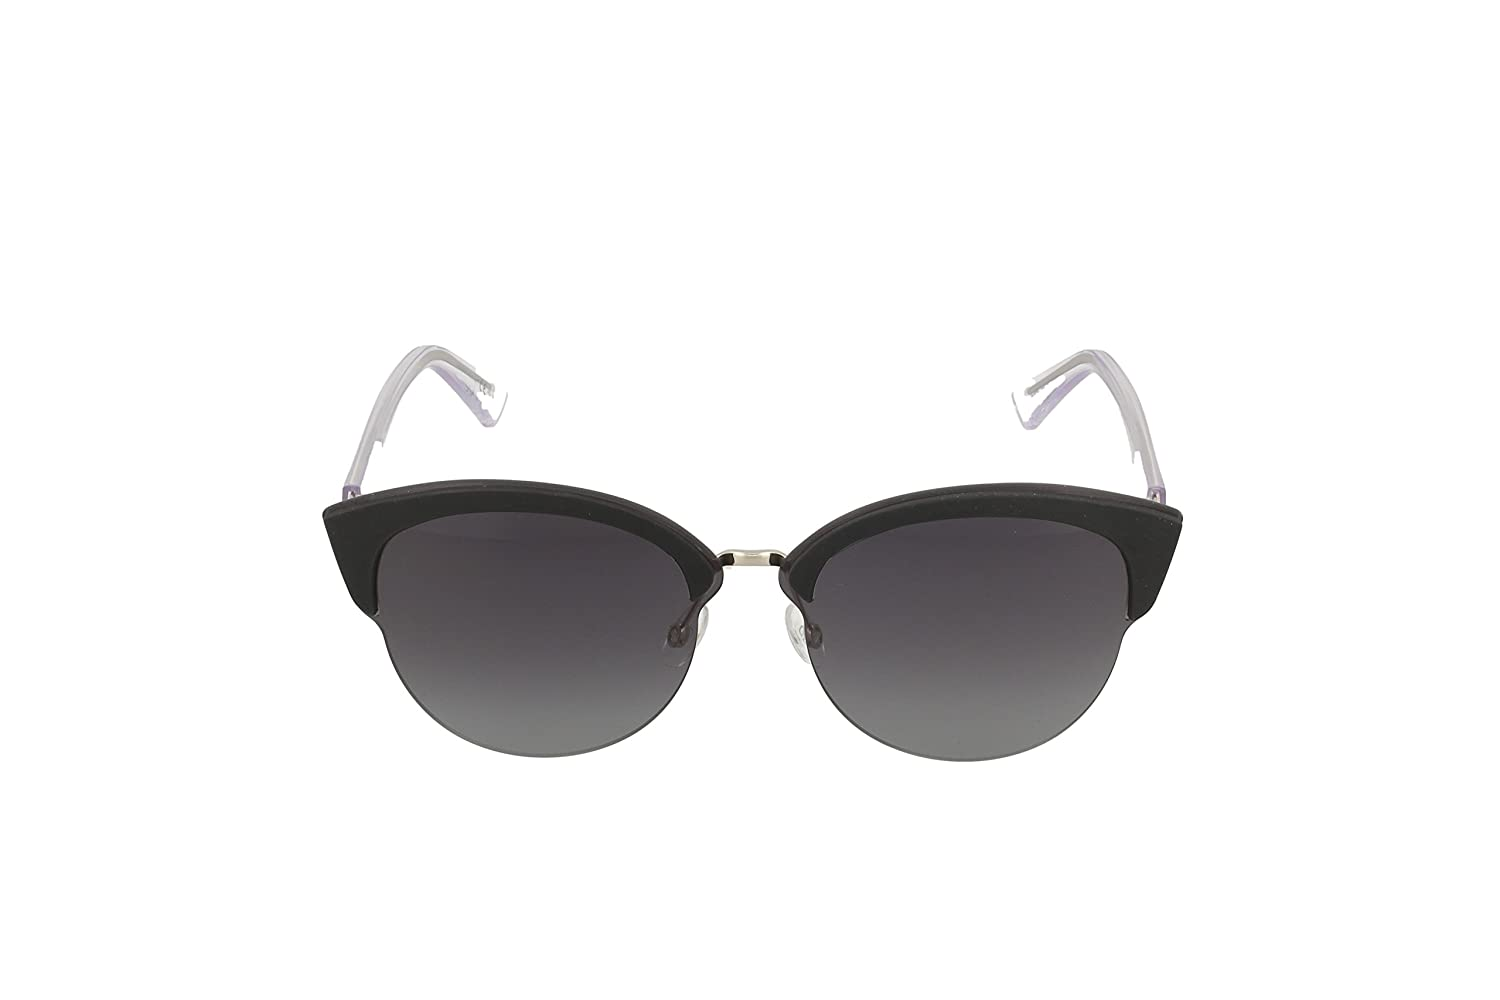 8ffb3eb1846 Dior Women CD RUN S 65 Gold Grey Sunglasses 65mm-服饰箱包-亚马逊中国